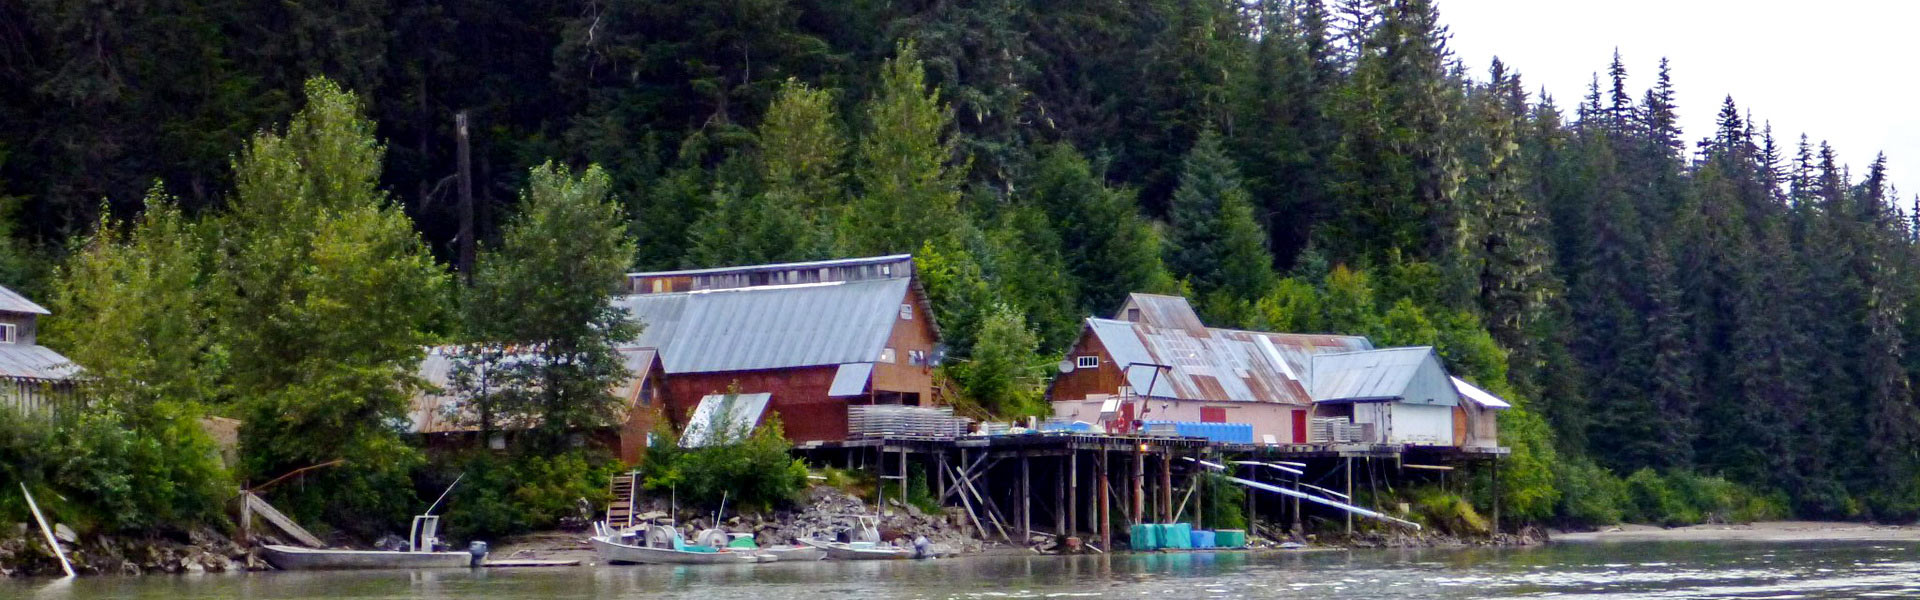 Great Glacier Salmon Plant and Camp